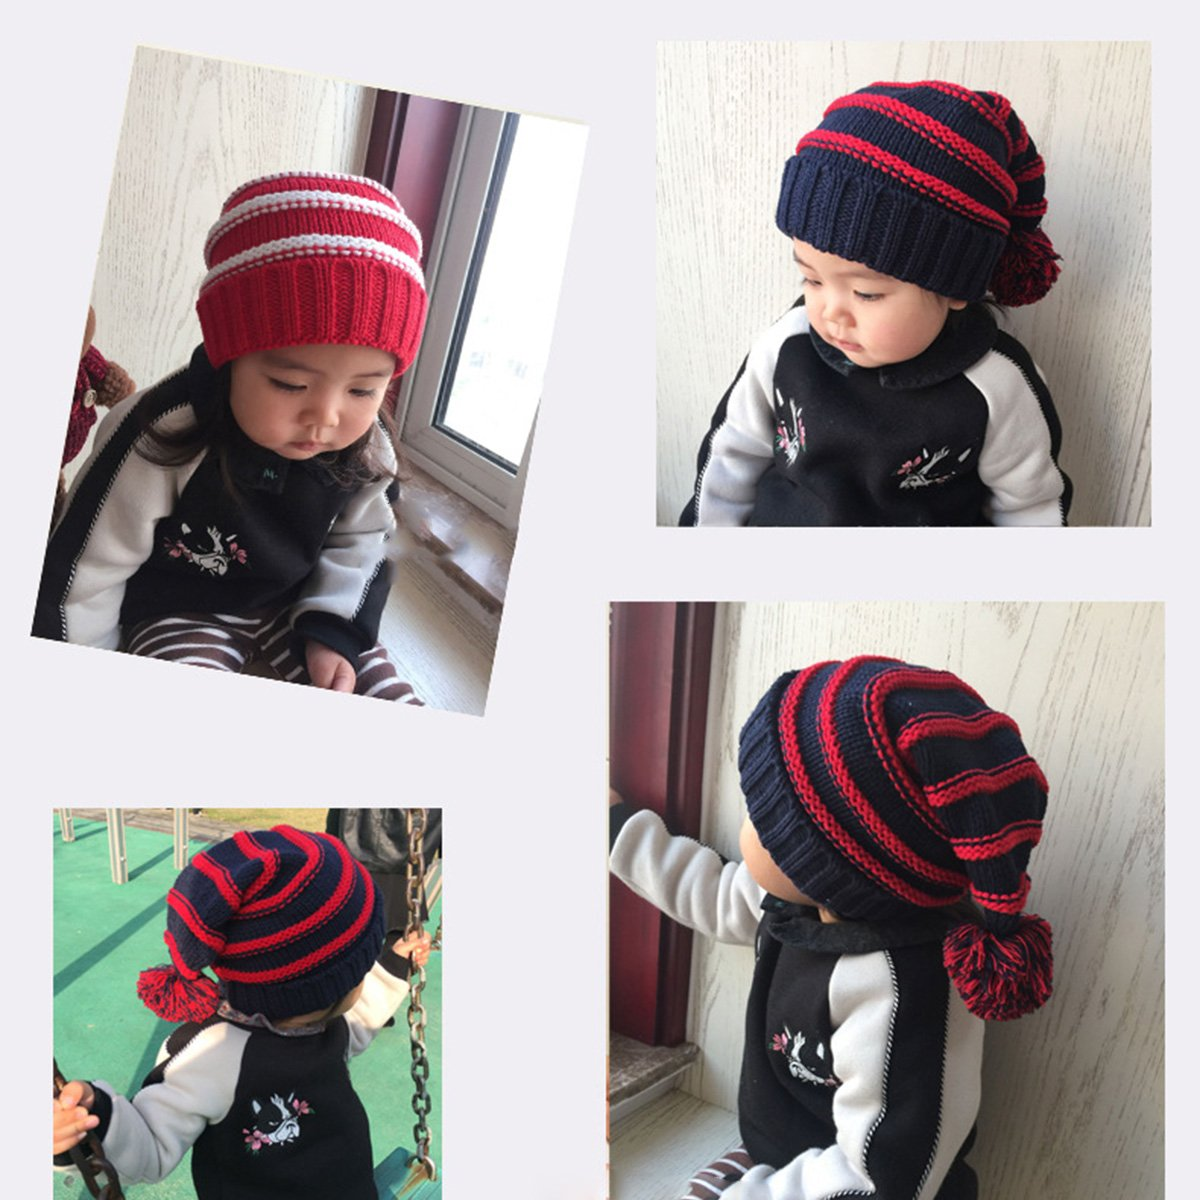 S Red /& White Classic Warm Adorable Kids Striped Knit Winter Pom Pom Hat Beanie Hats for Christmas